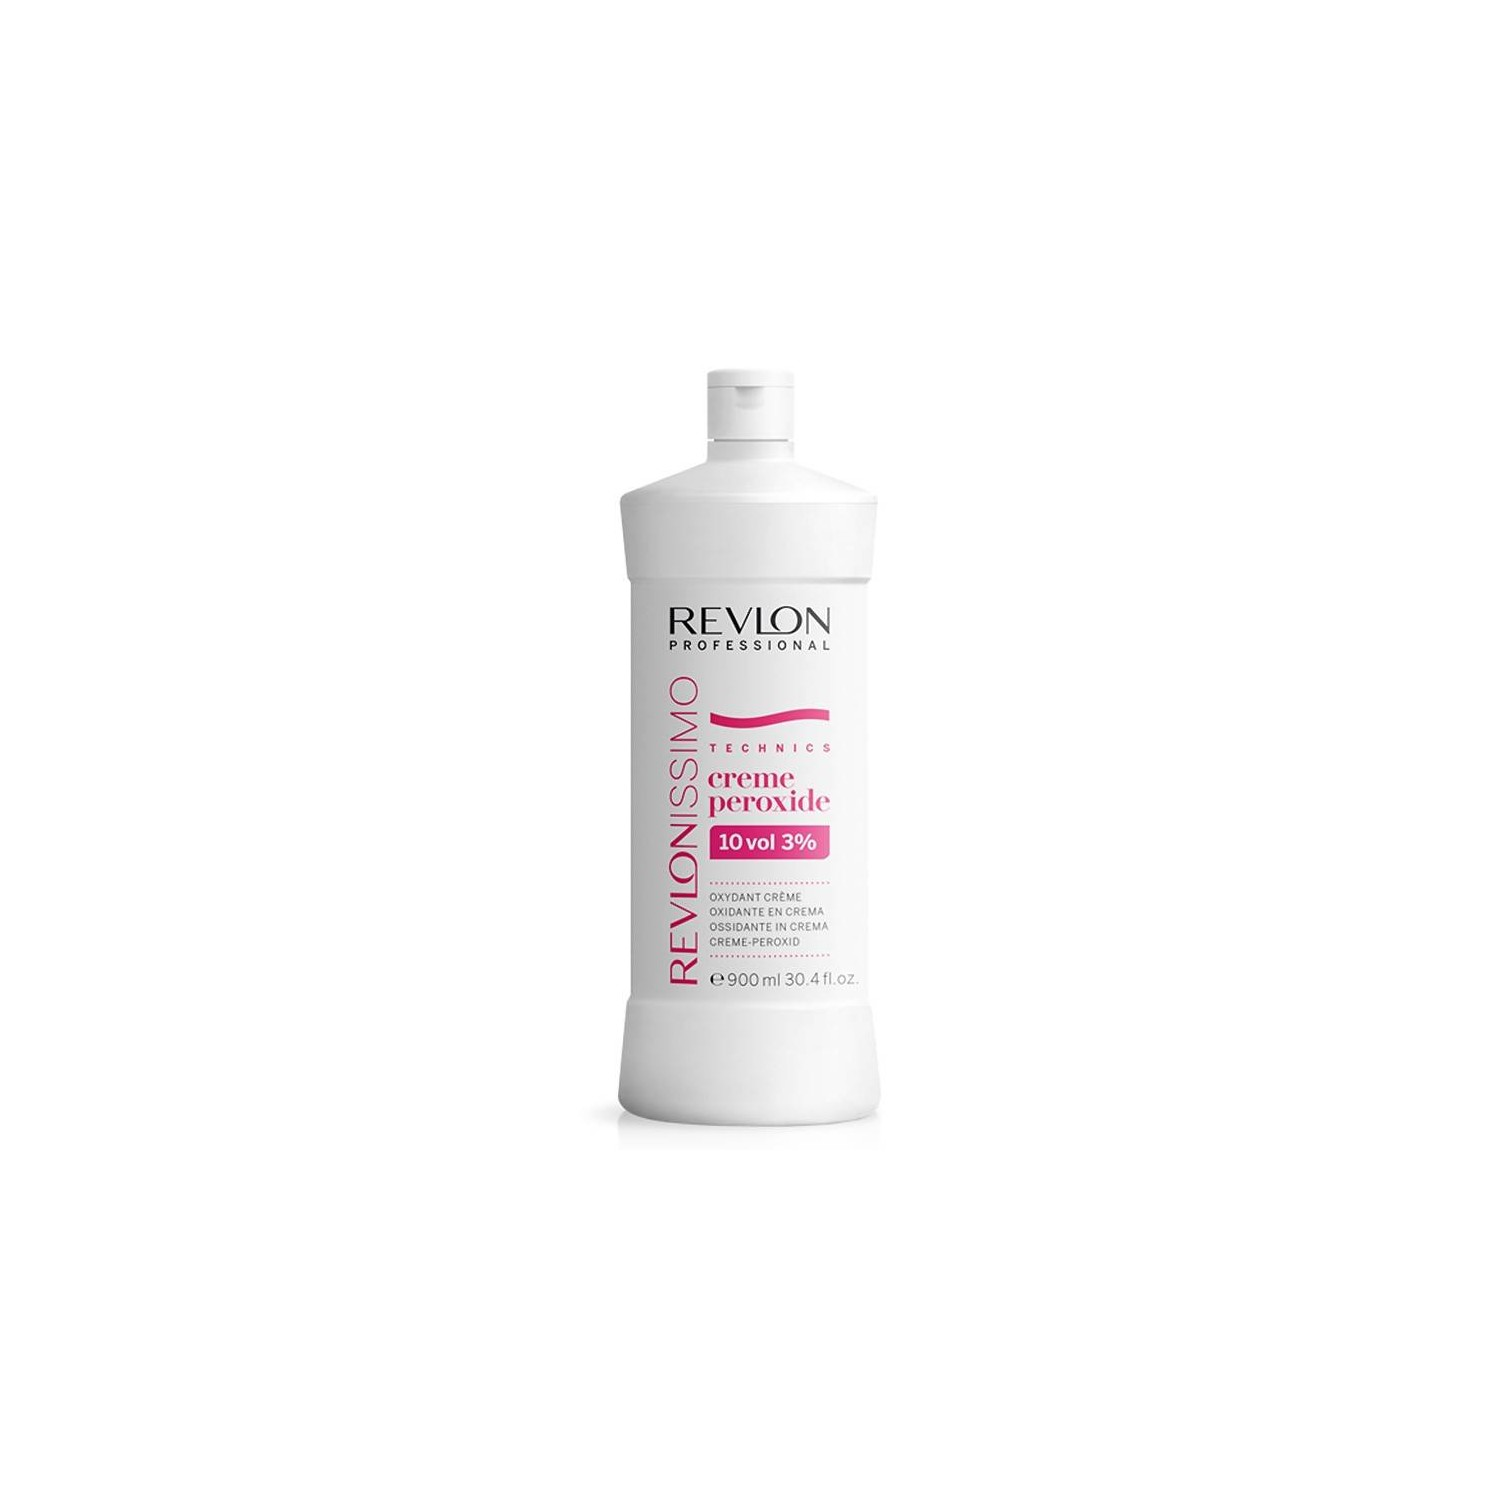 Revlonissimo Cream Peroxide 10vol (3%) 900 Ml